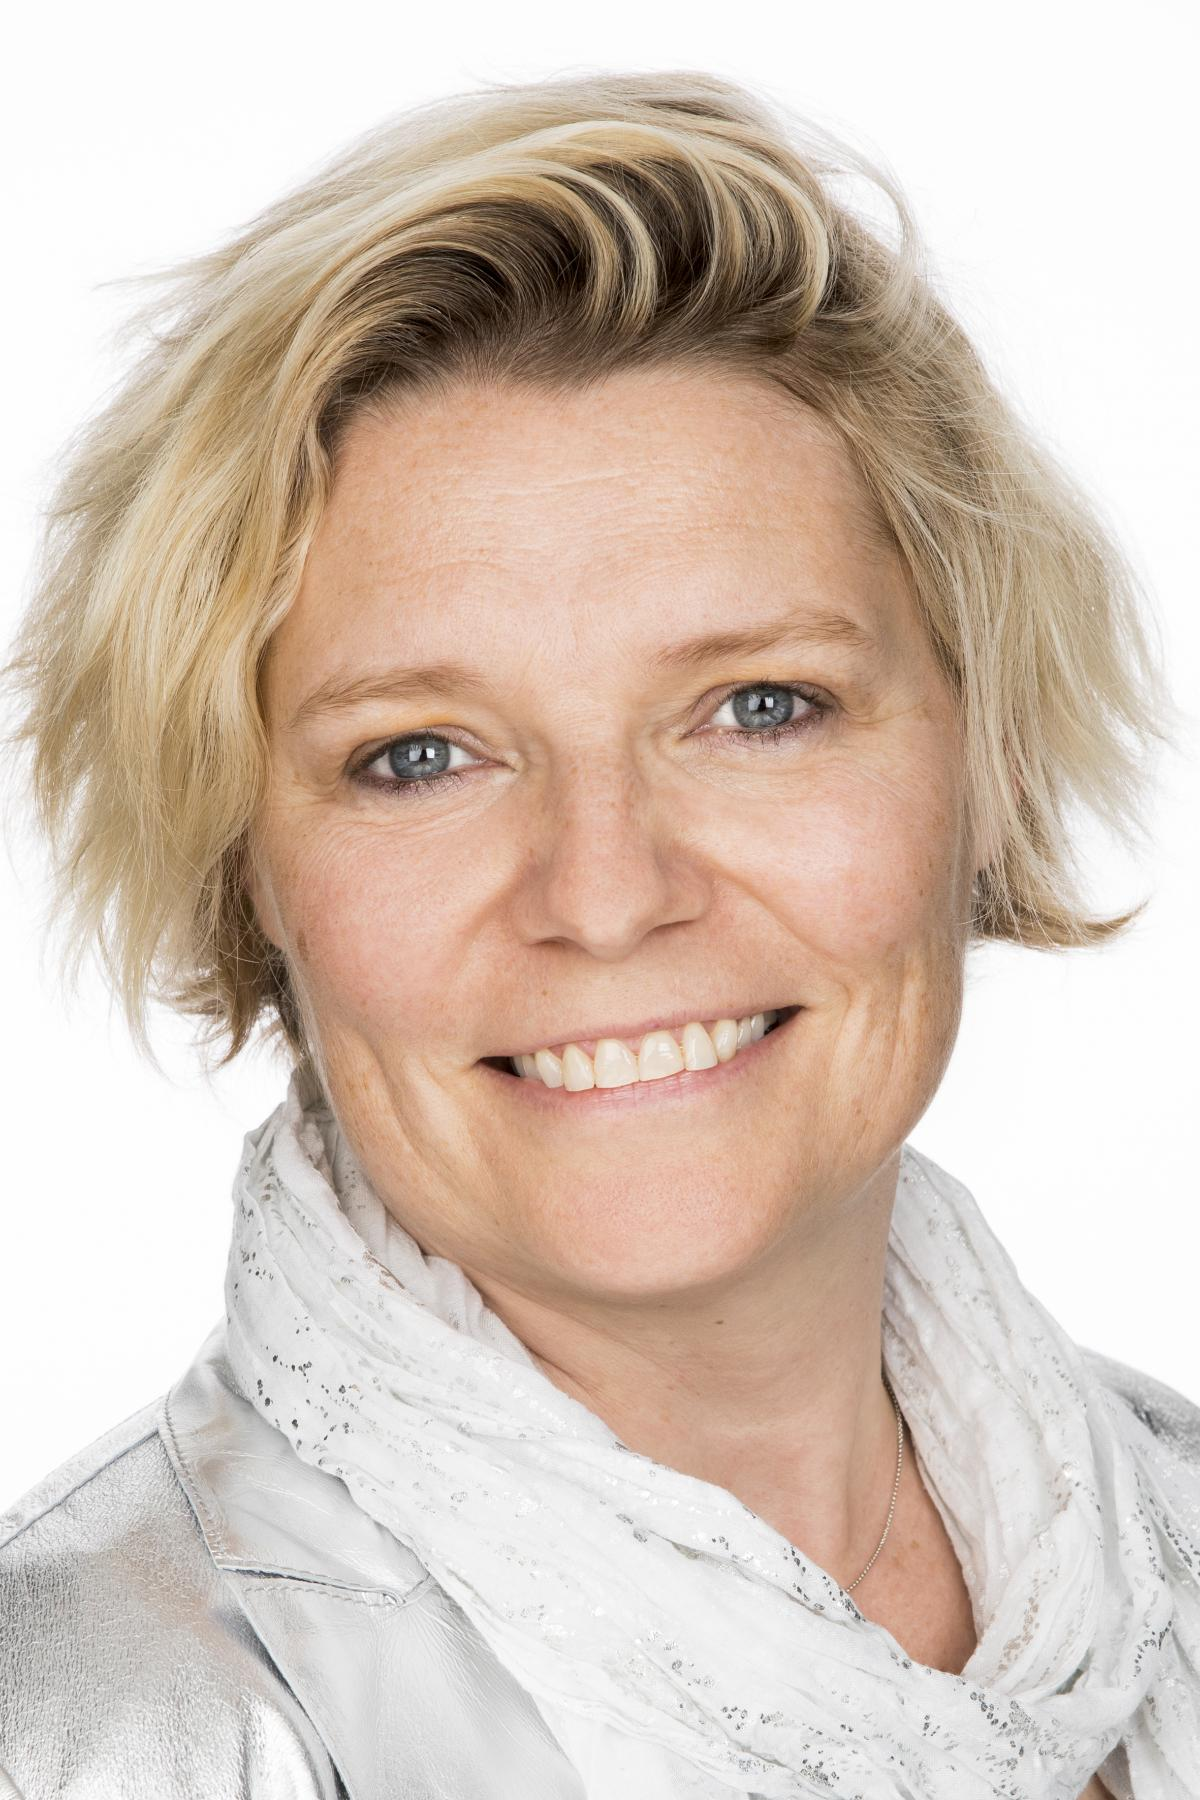 Rika Coppens, CEO van House of HR